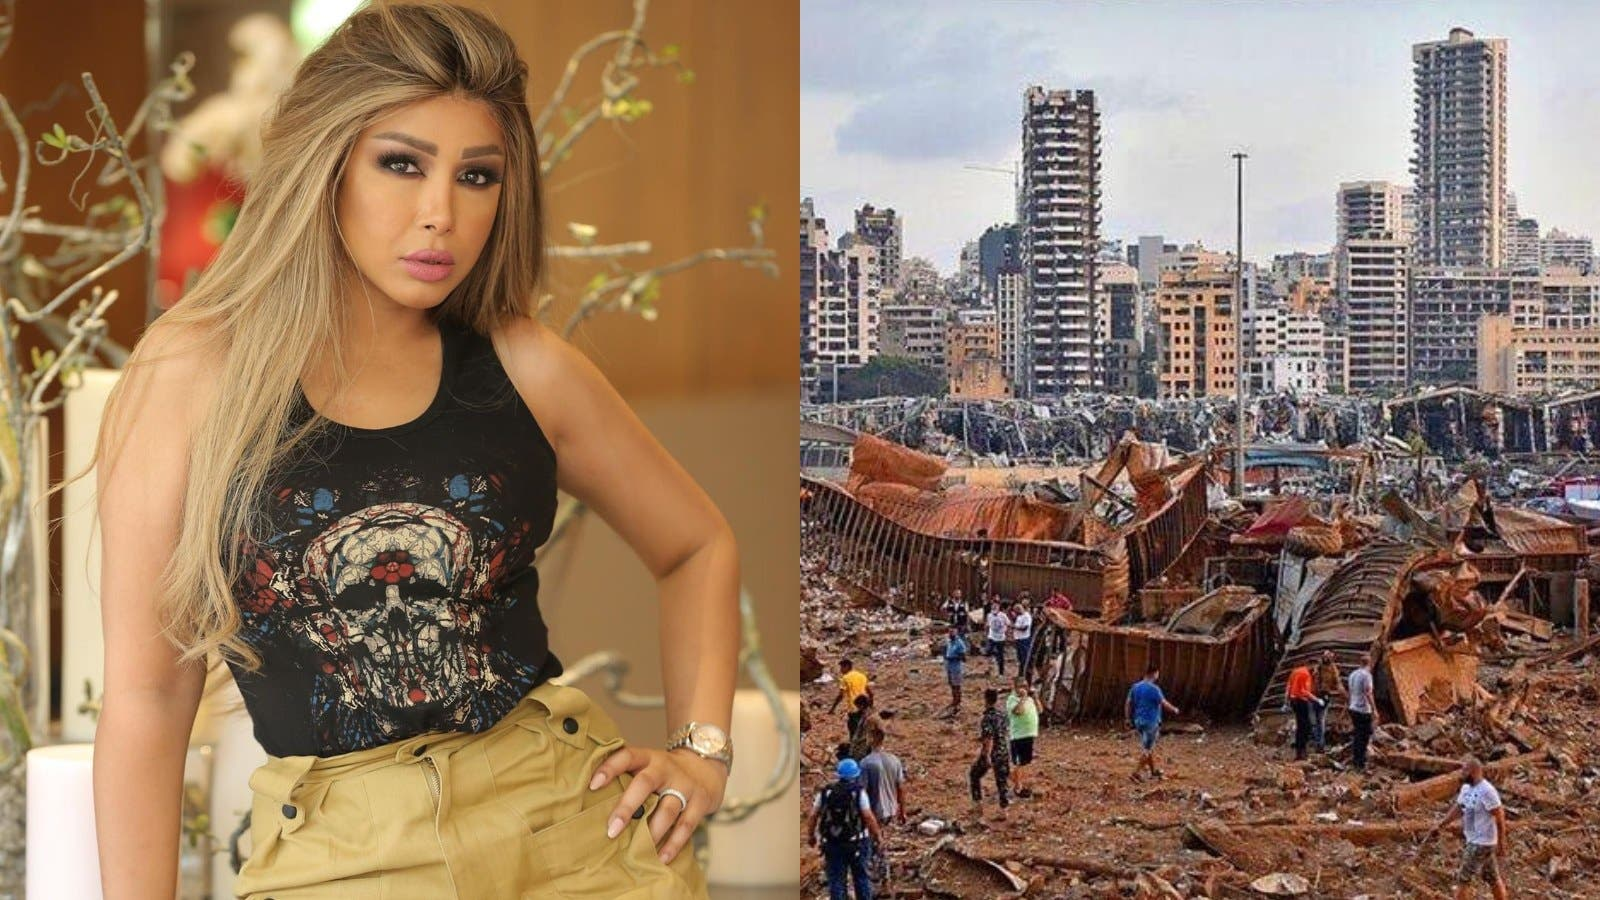 'I Could Have Been Killed'! Arwa Cries As She Shares a Devastating Video of Her Destroyed Neighborhood